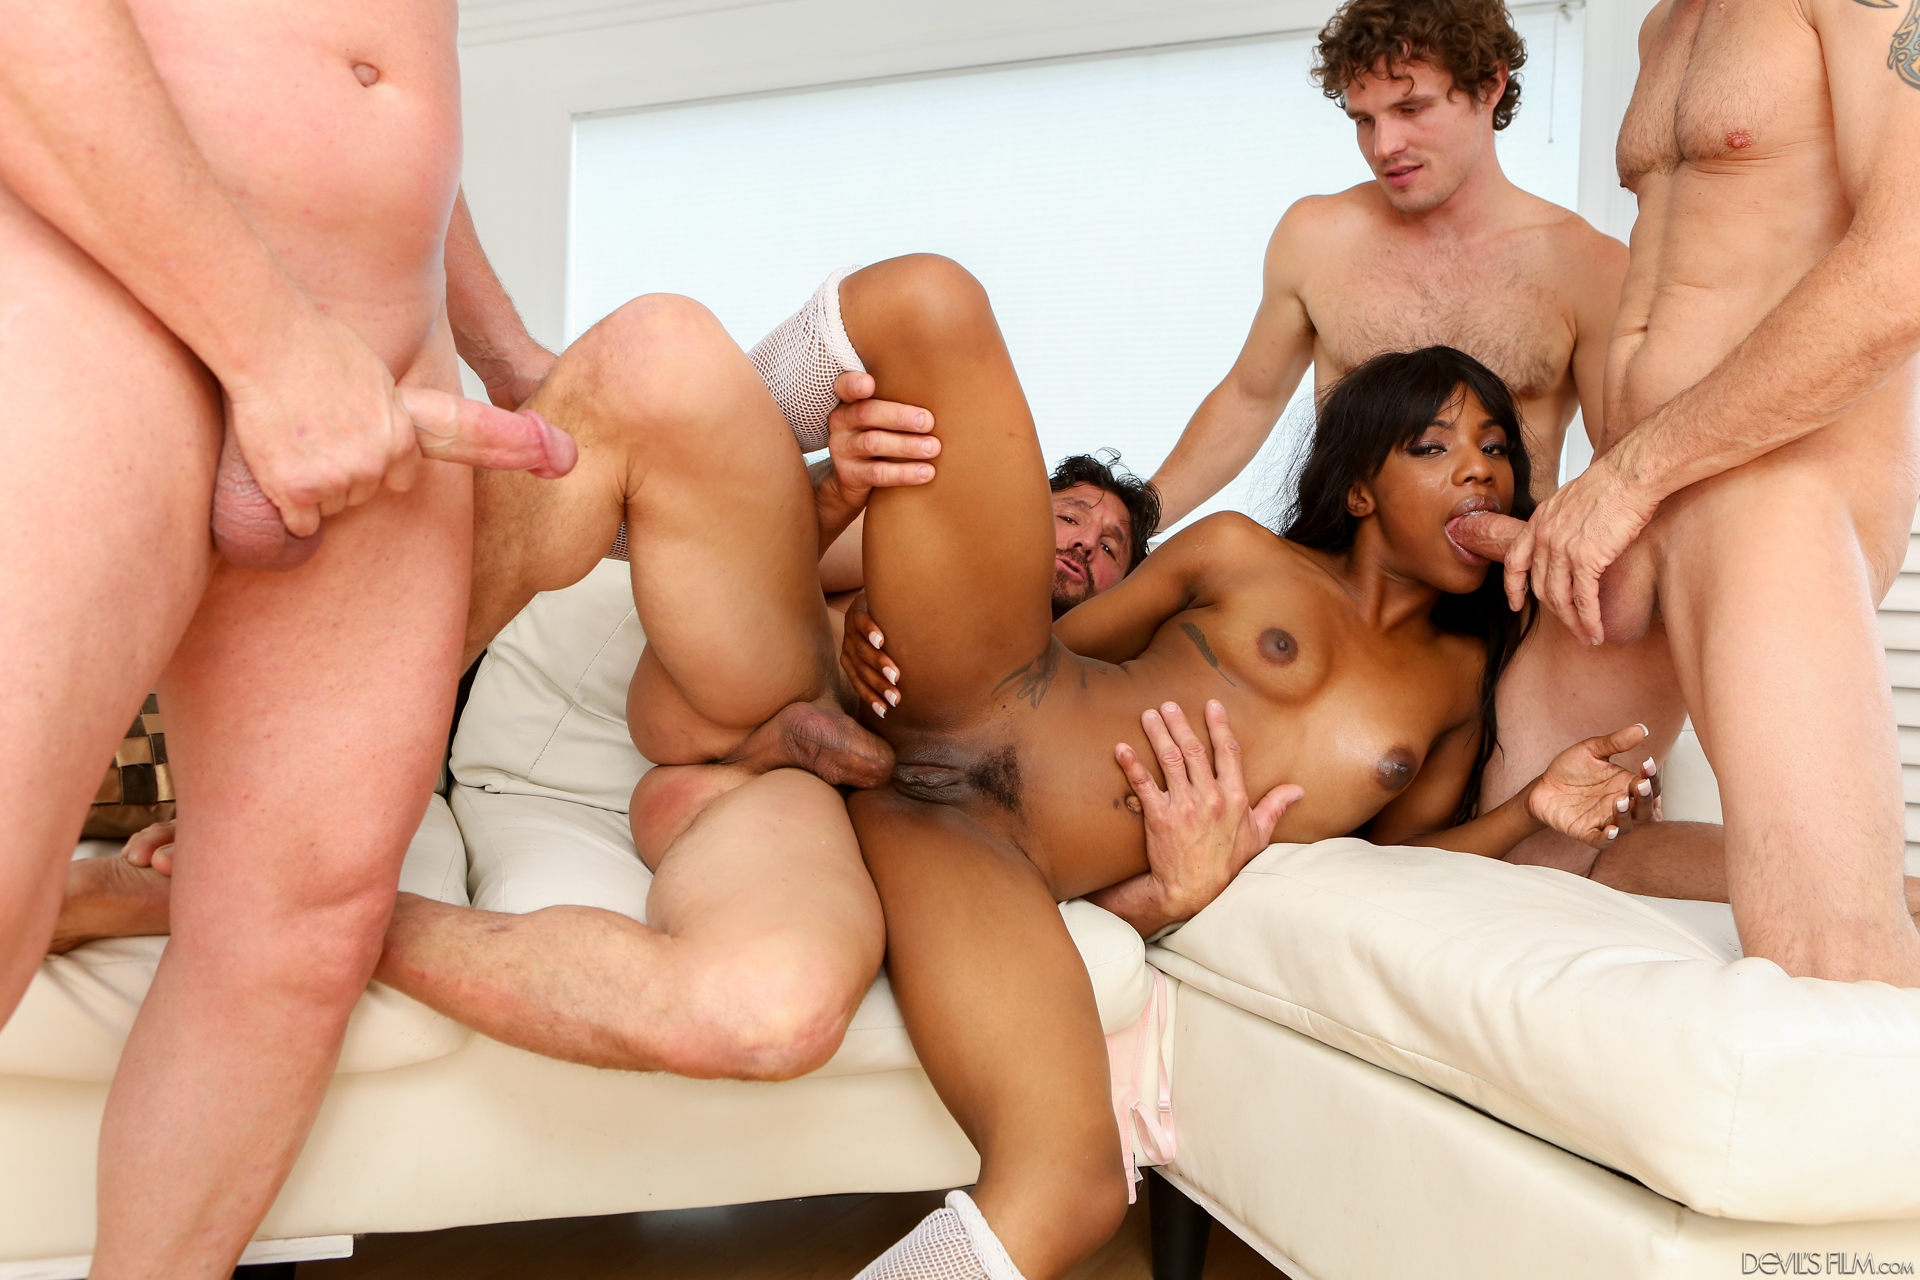 Black Girl White Guy  Most Sexy Porn  Free Hd  4K Photos-3158